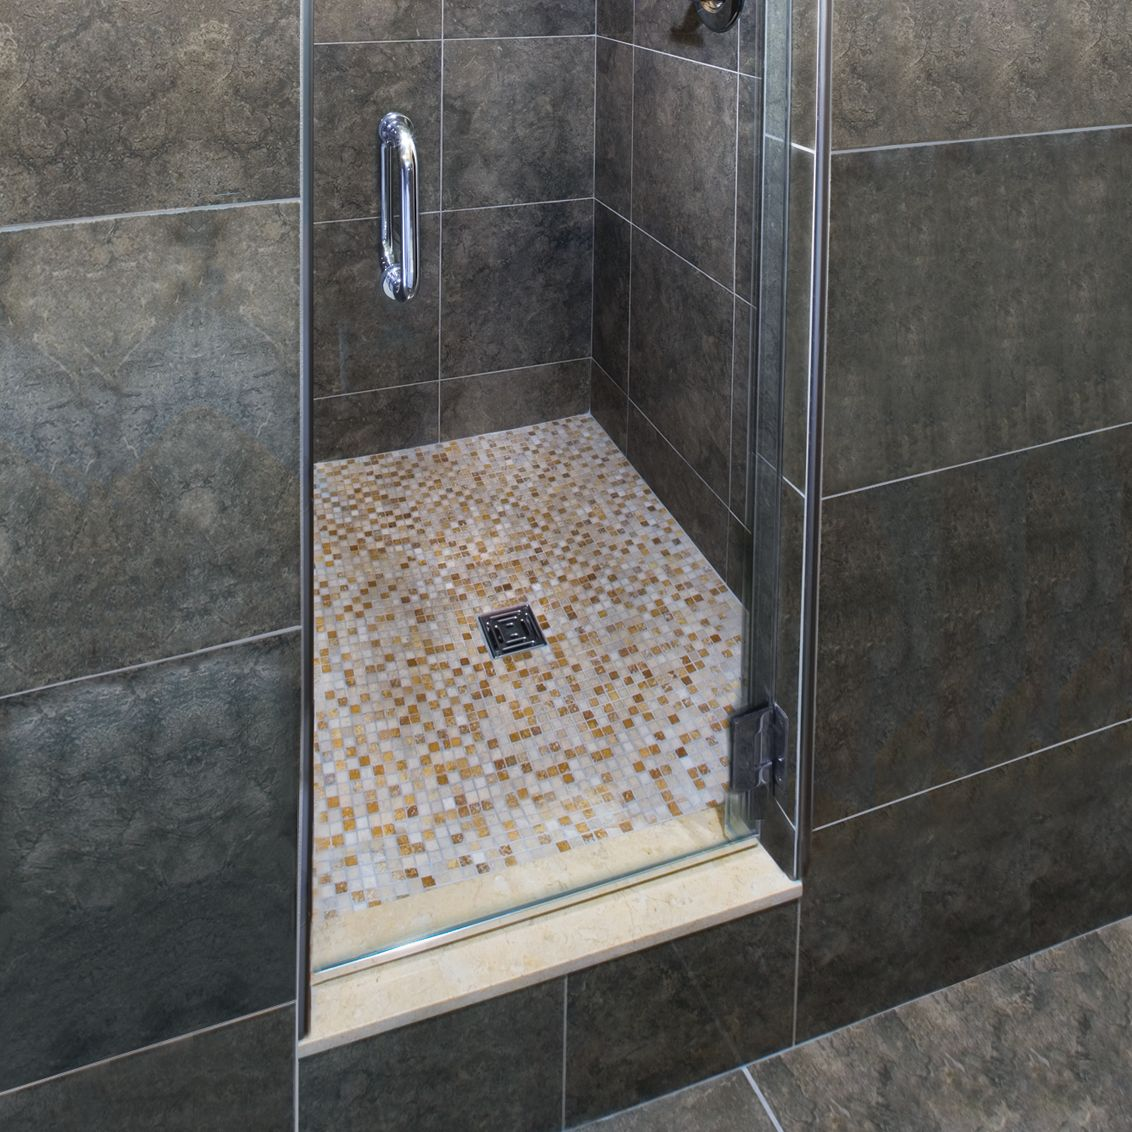 Essential water management in tiled showers How to tile a shower